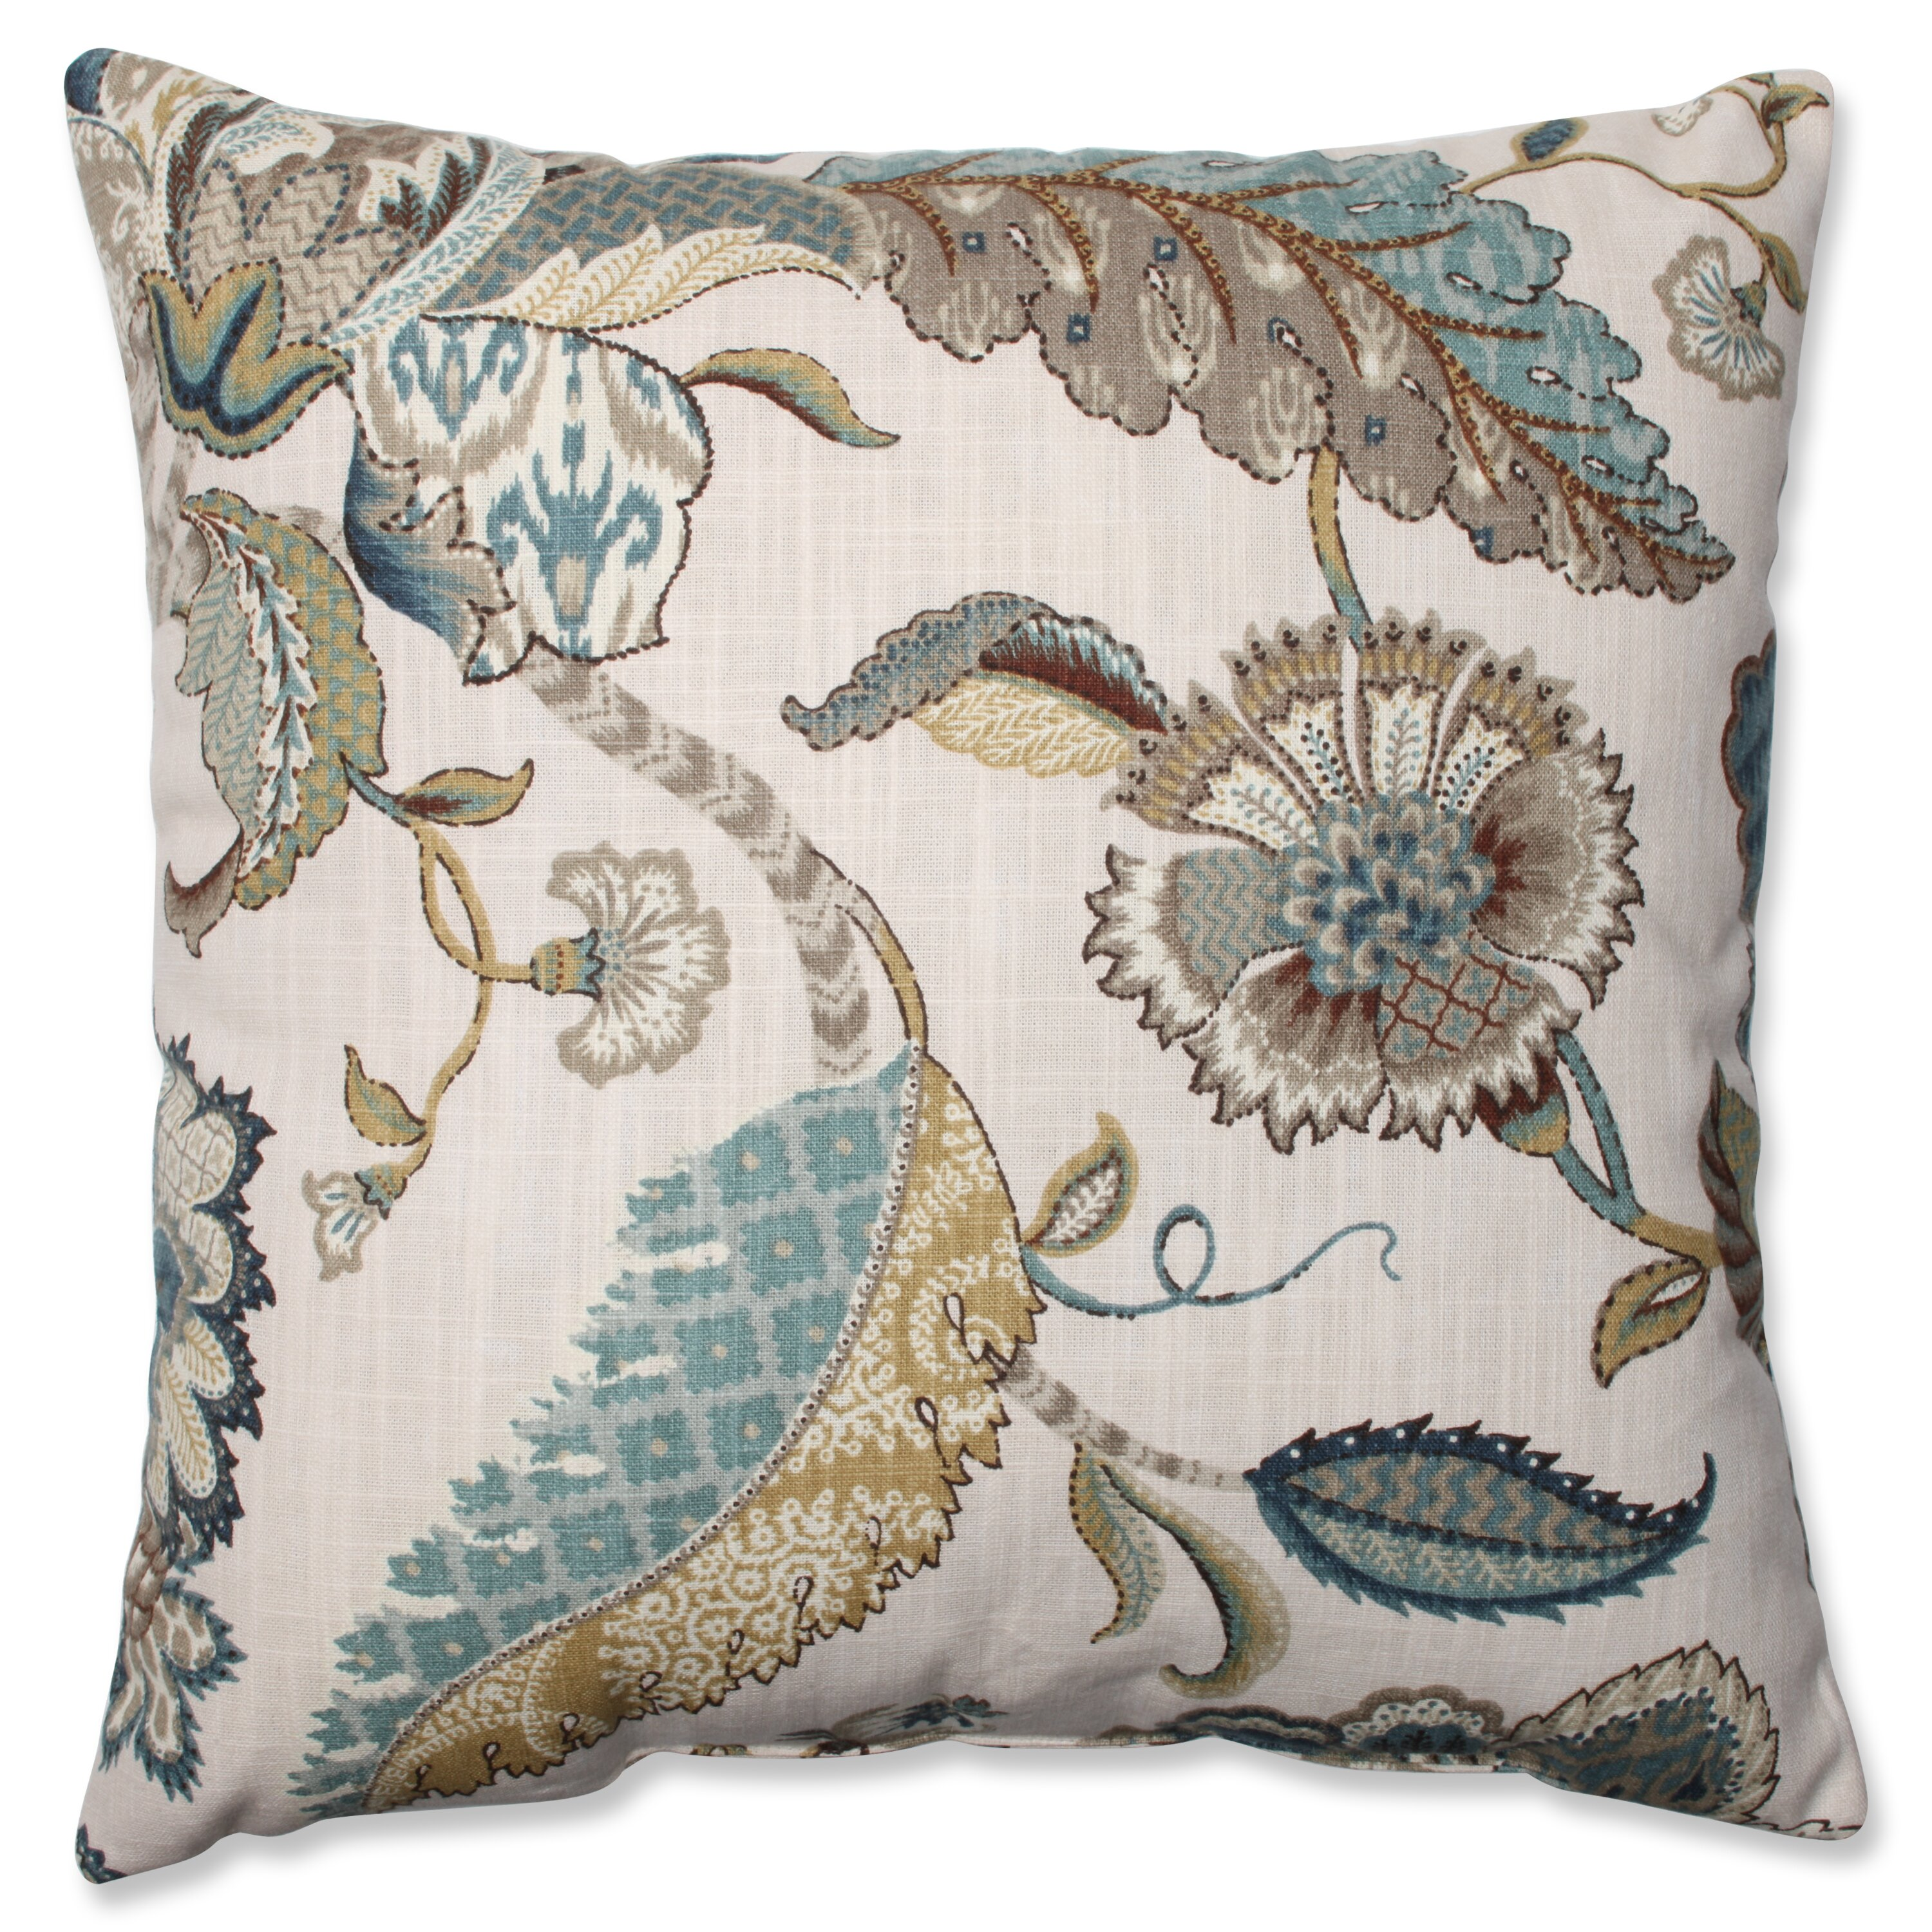 Decorative Pillows Images : Charlton Home Erie 100% Cotton Throw Pillow & Reviews Wayfair